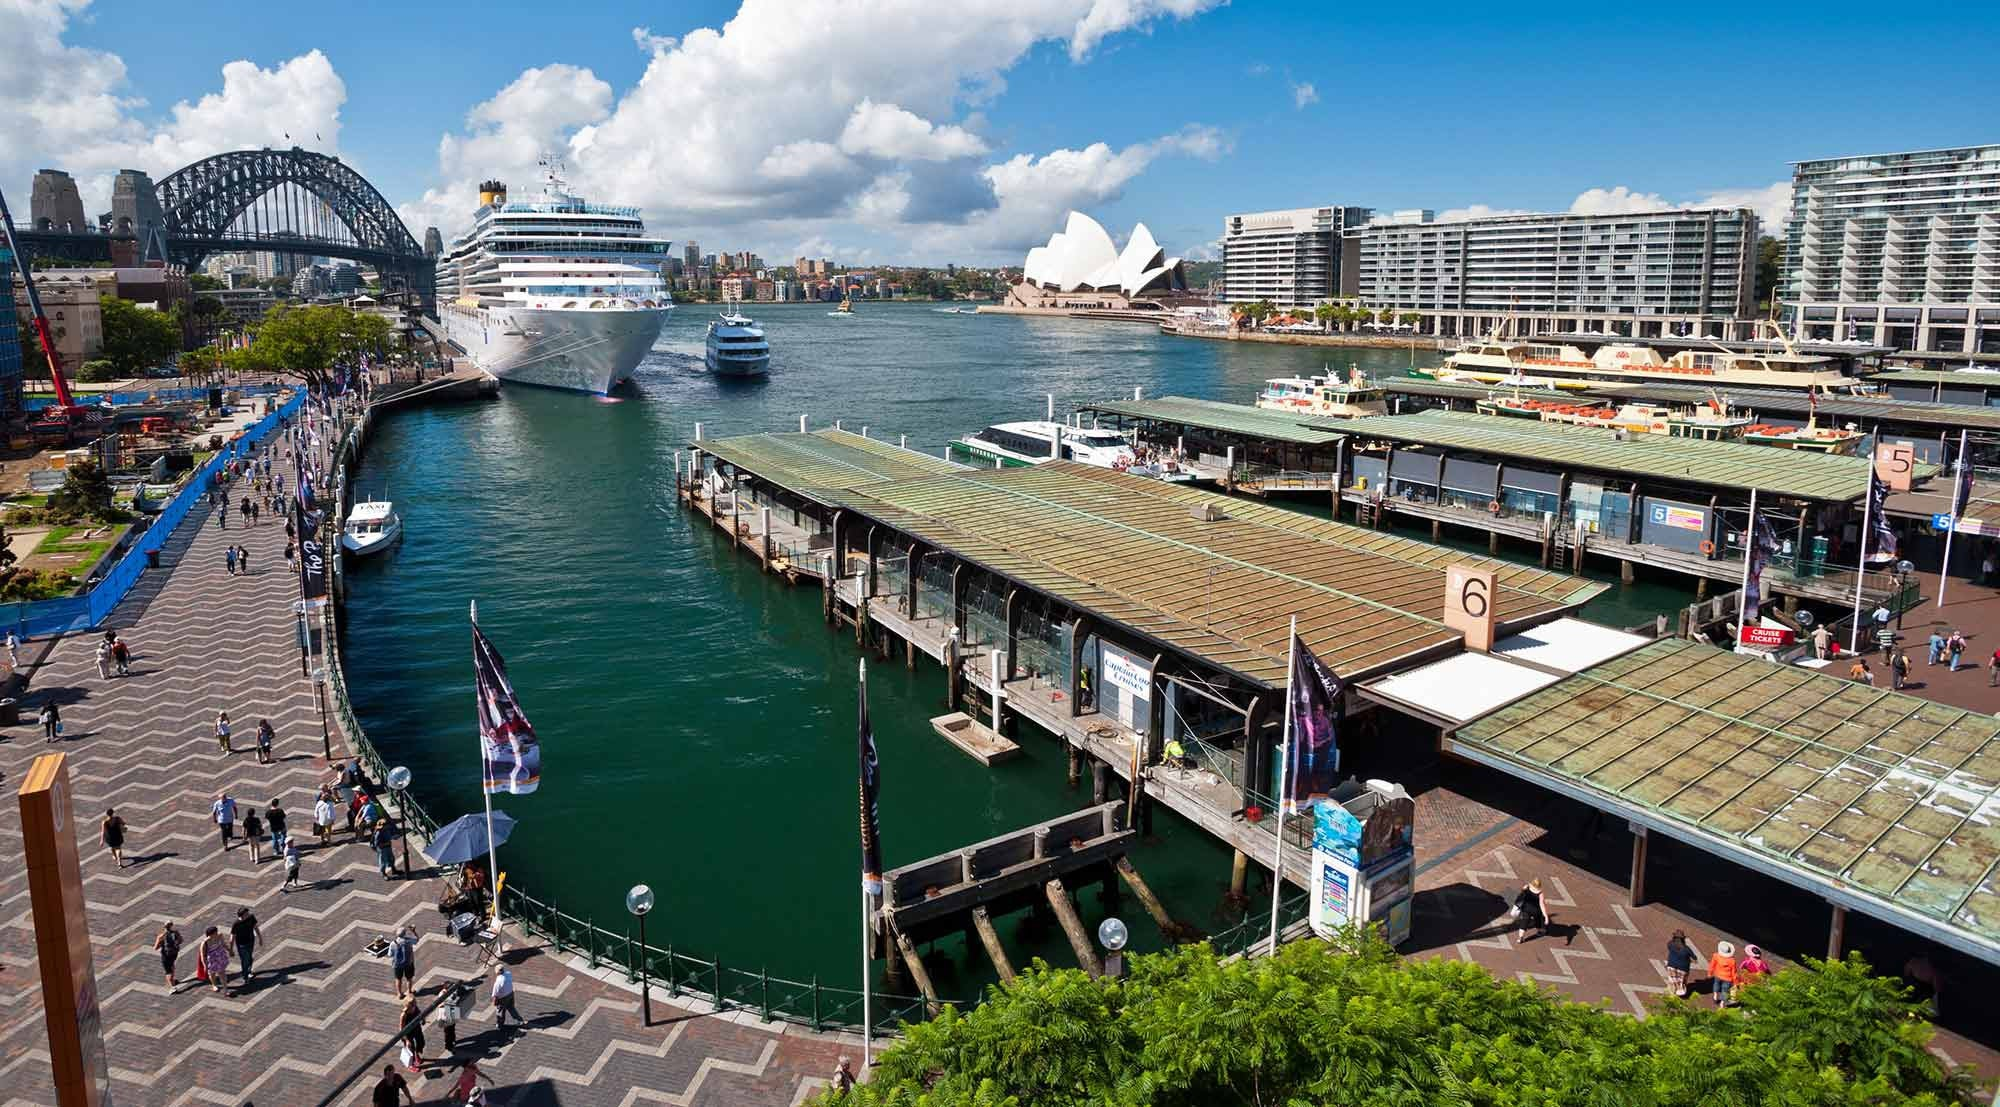 9 Location For Wedding Photos In Sydney - Circular Quay